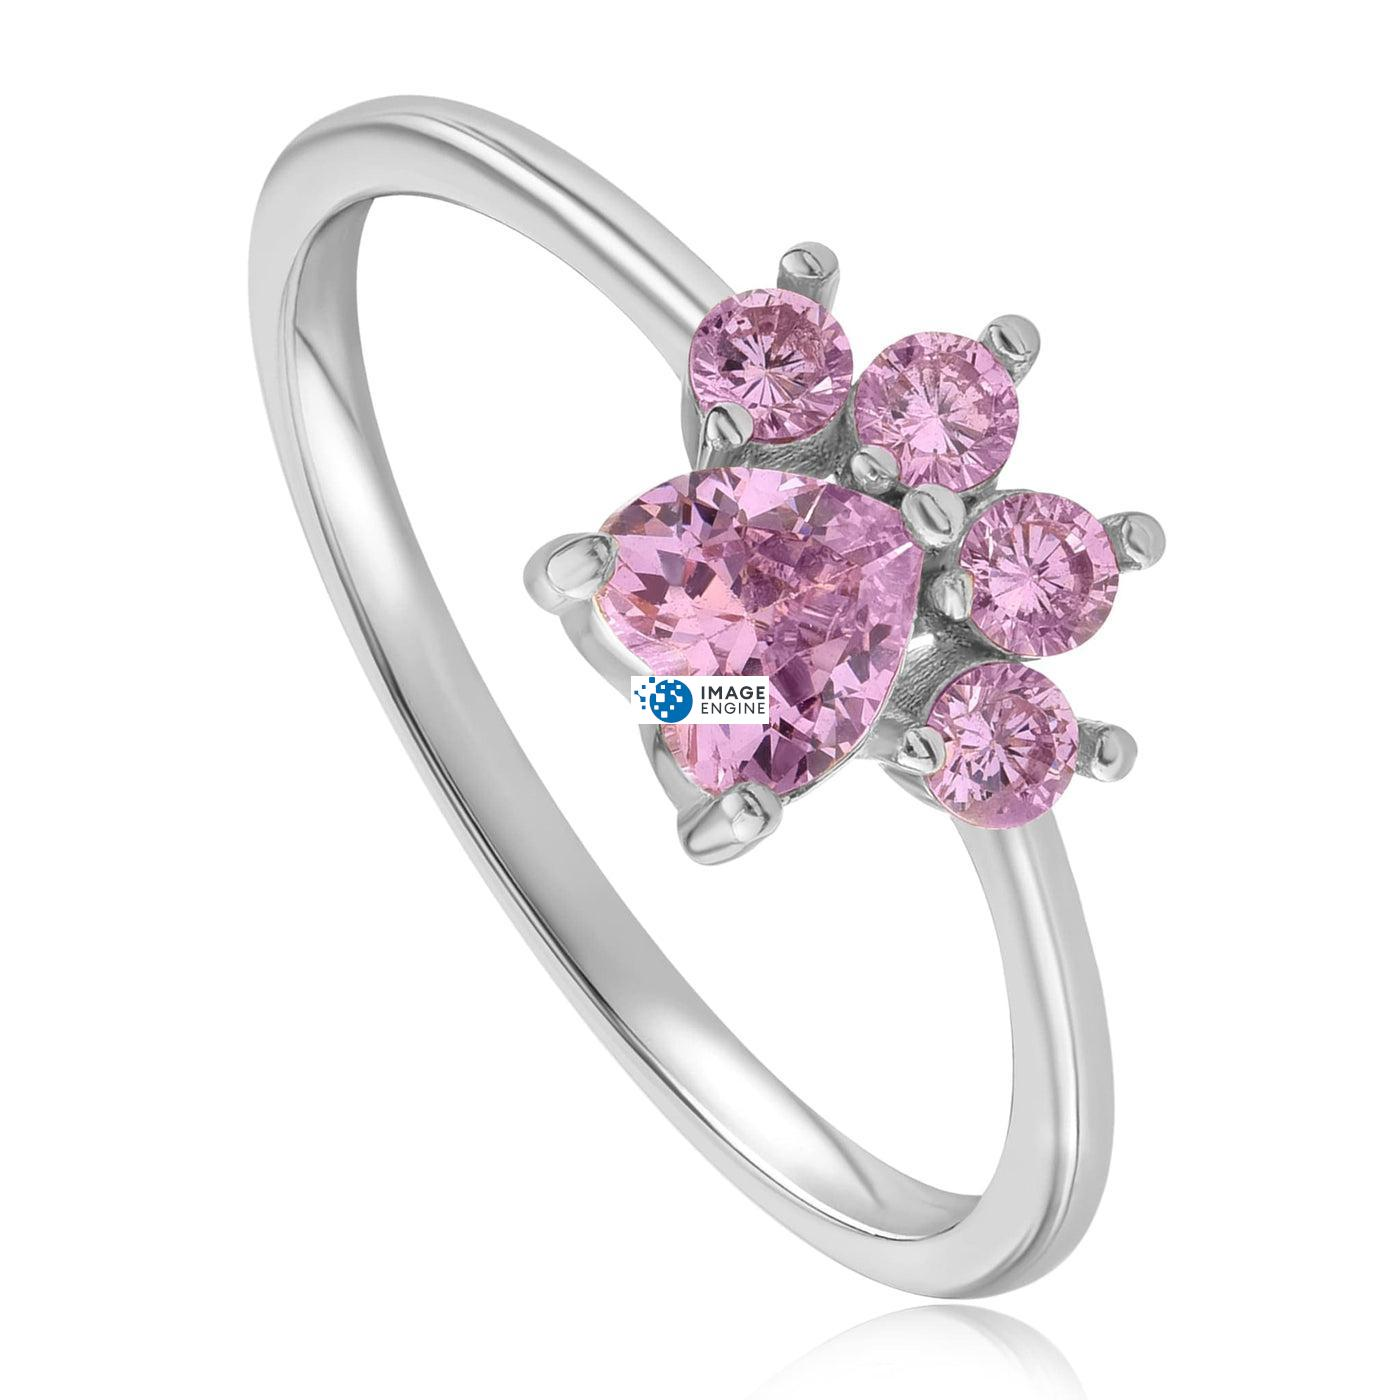 Bella Paw Rose Quartz Ring - Three Quarter View - 925 Sterling Silver